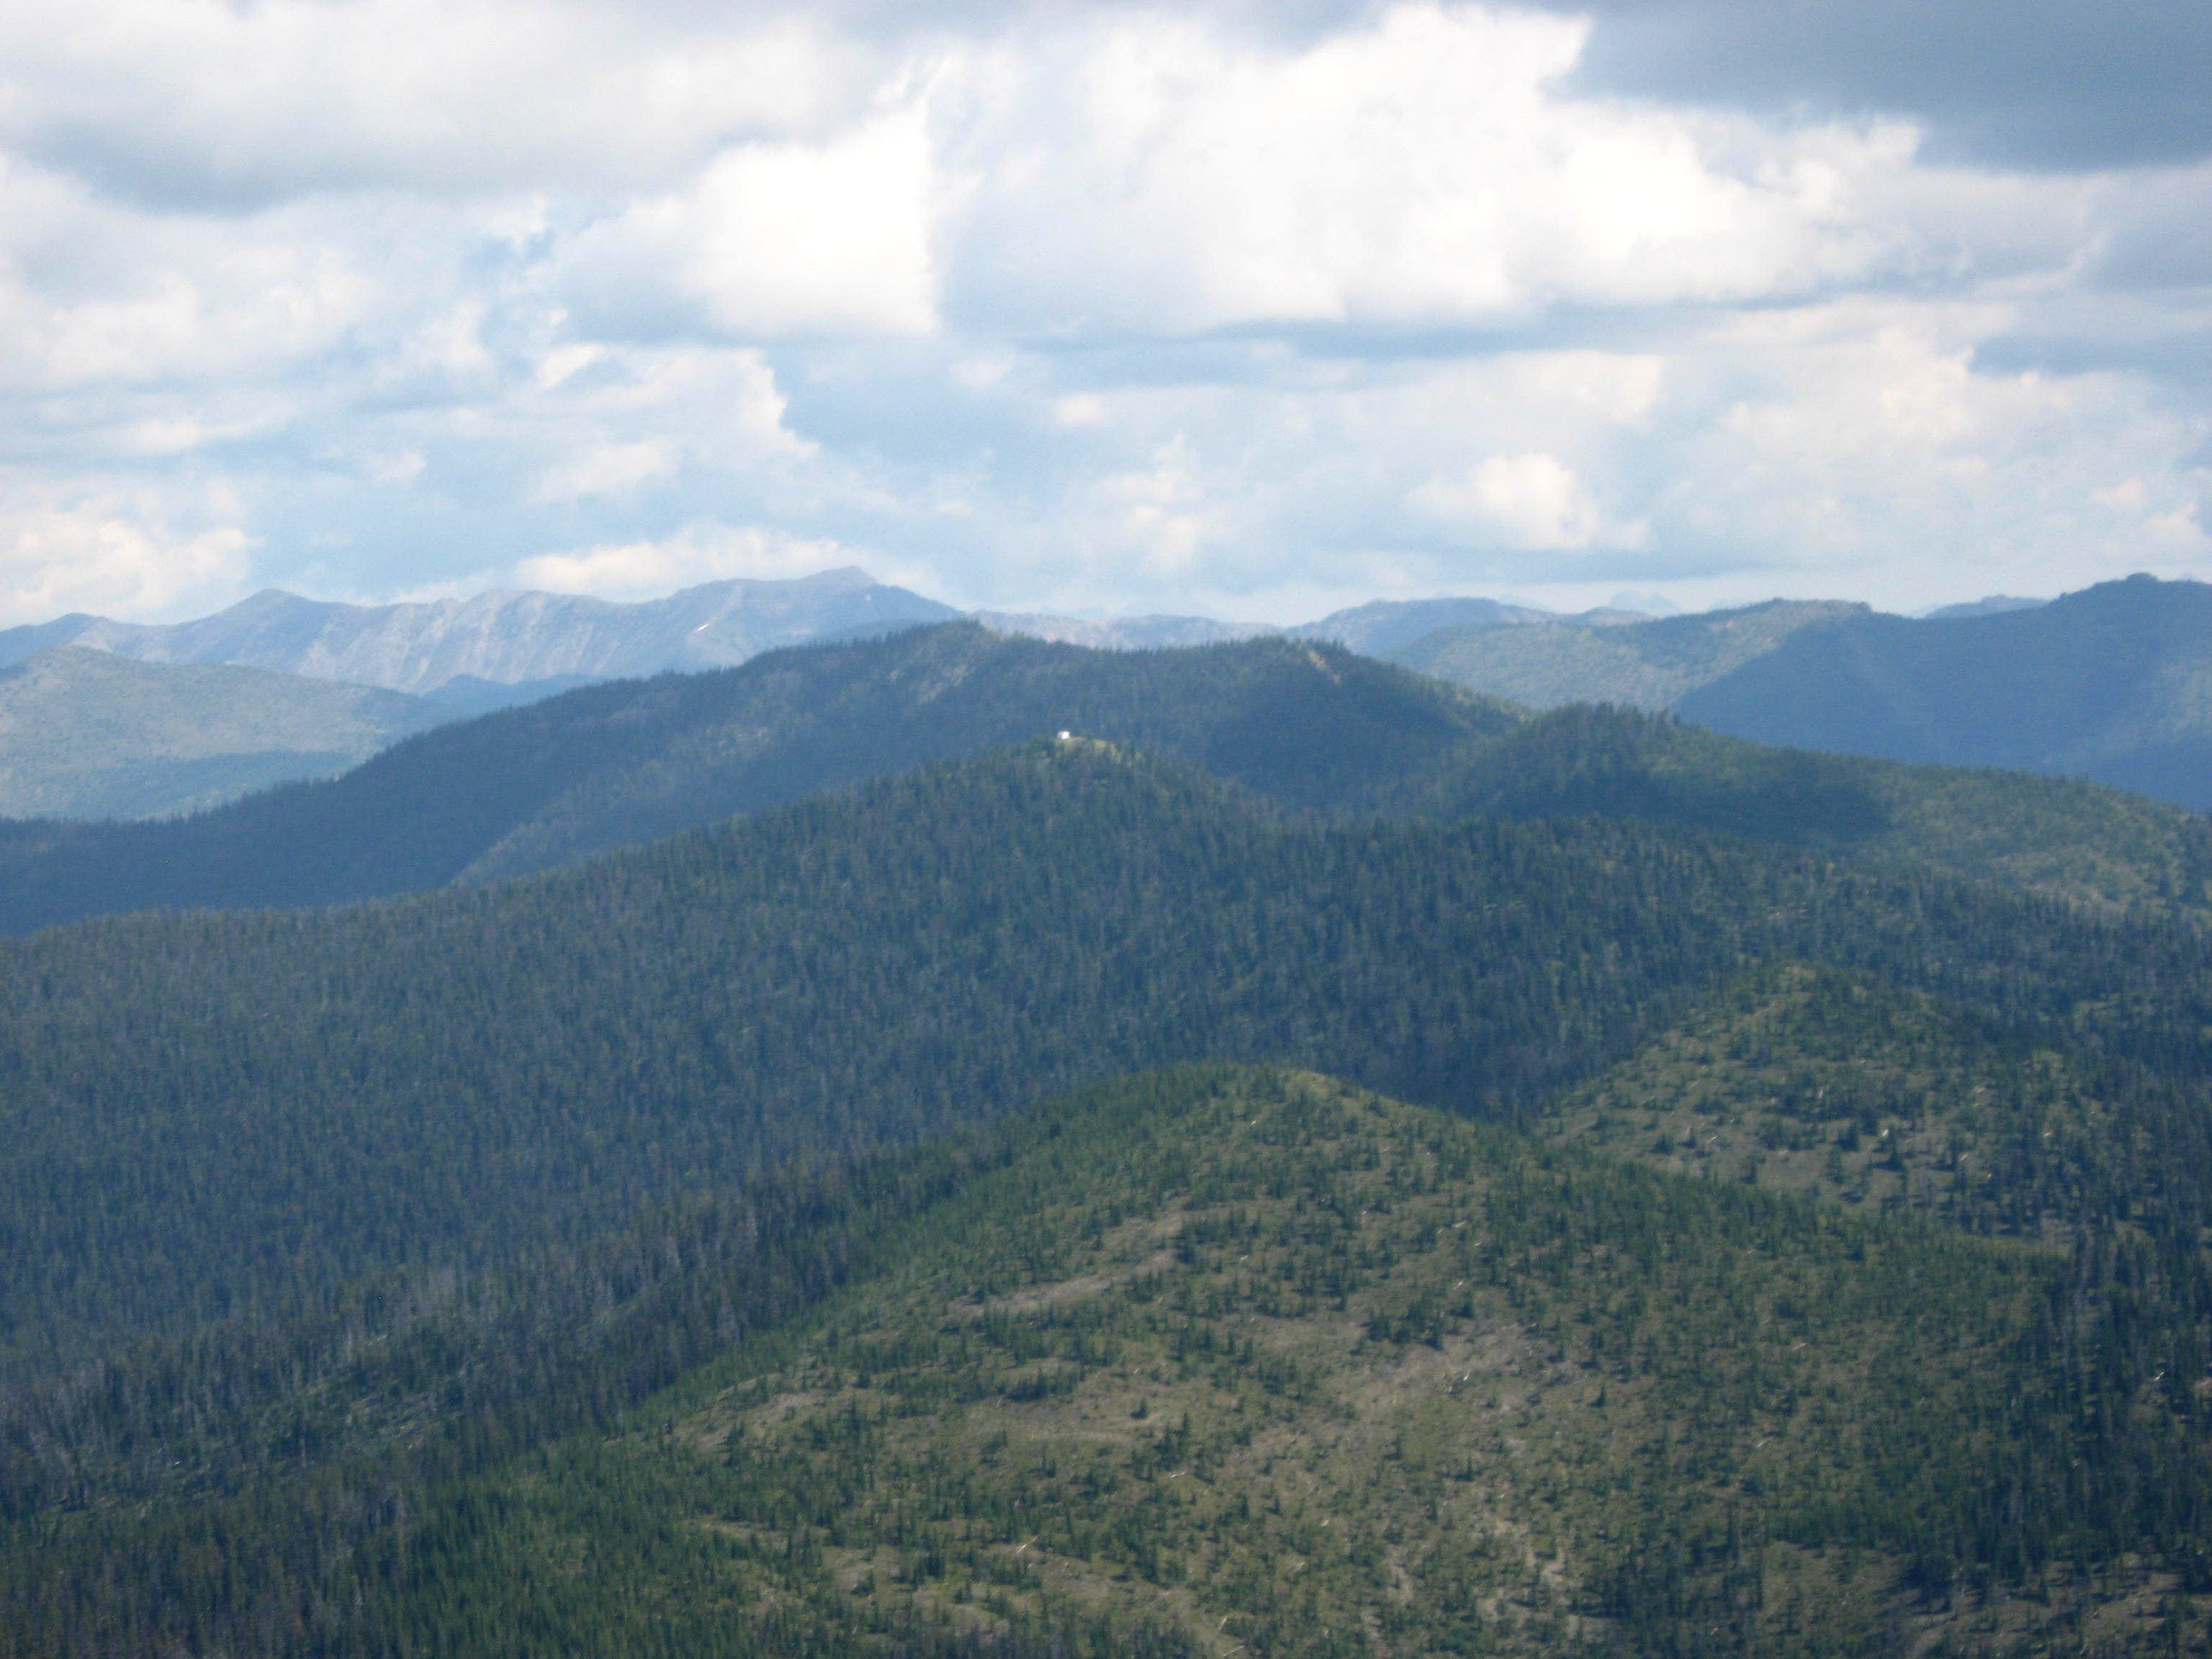 Mount Wam and Lookout